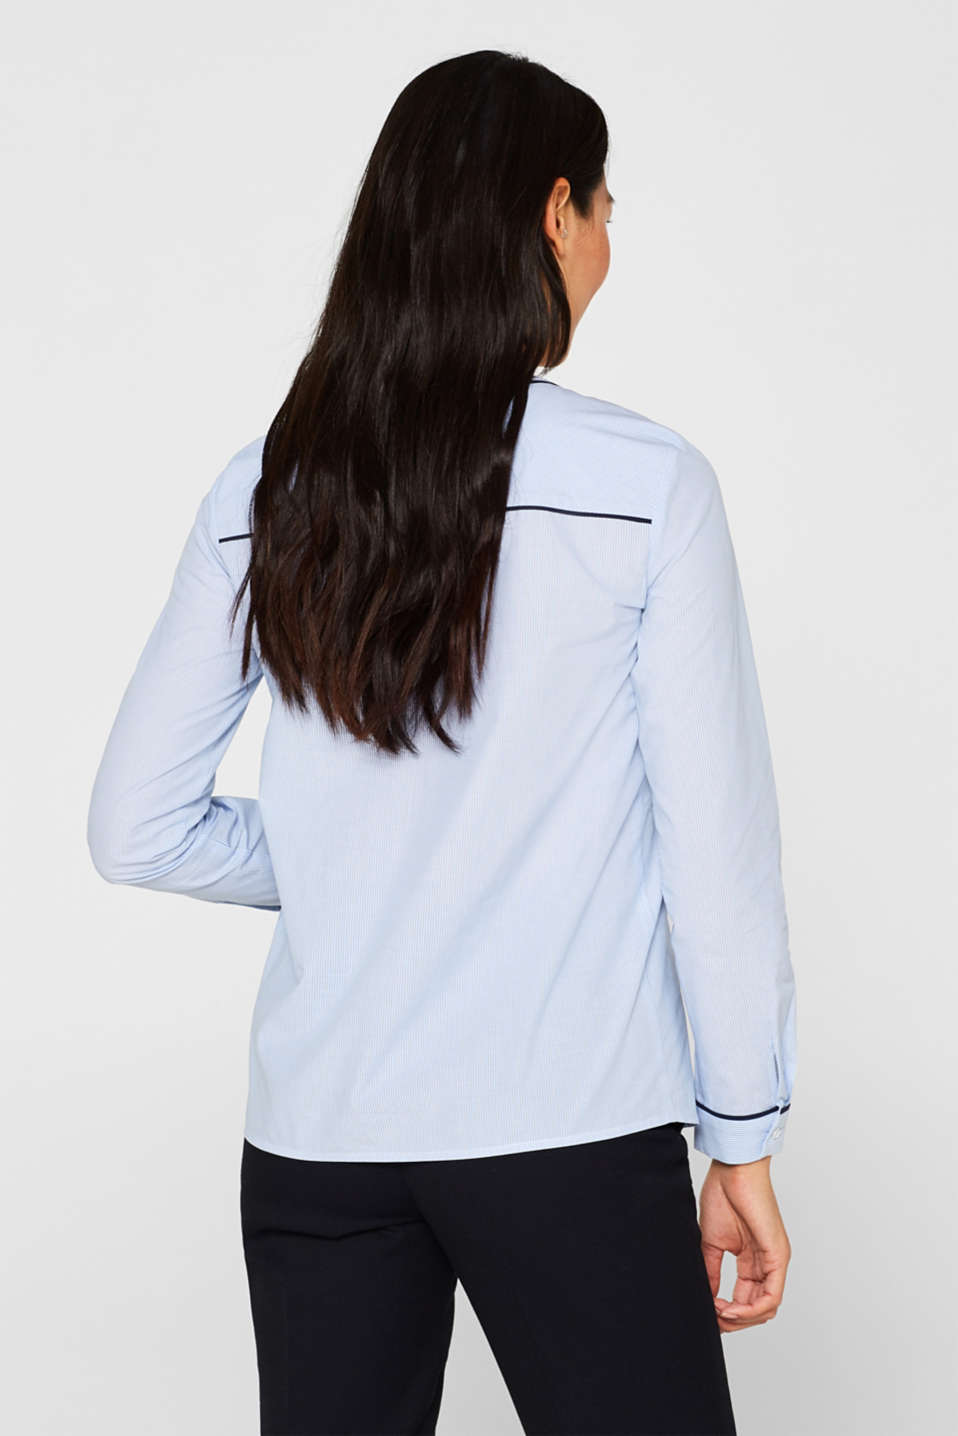 Blouse with piping, 100% cotton, LIGHT BLUE, detail image number 3